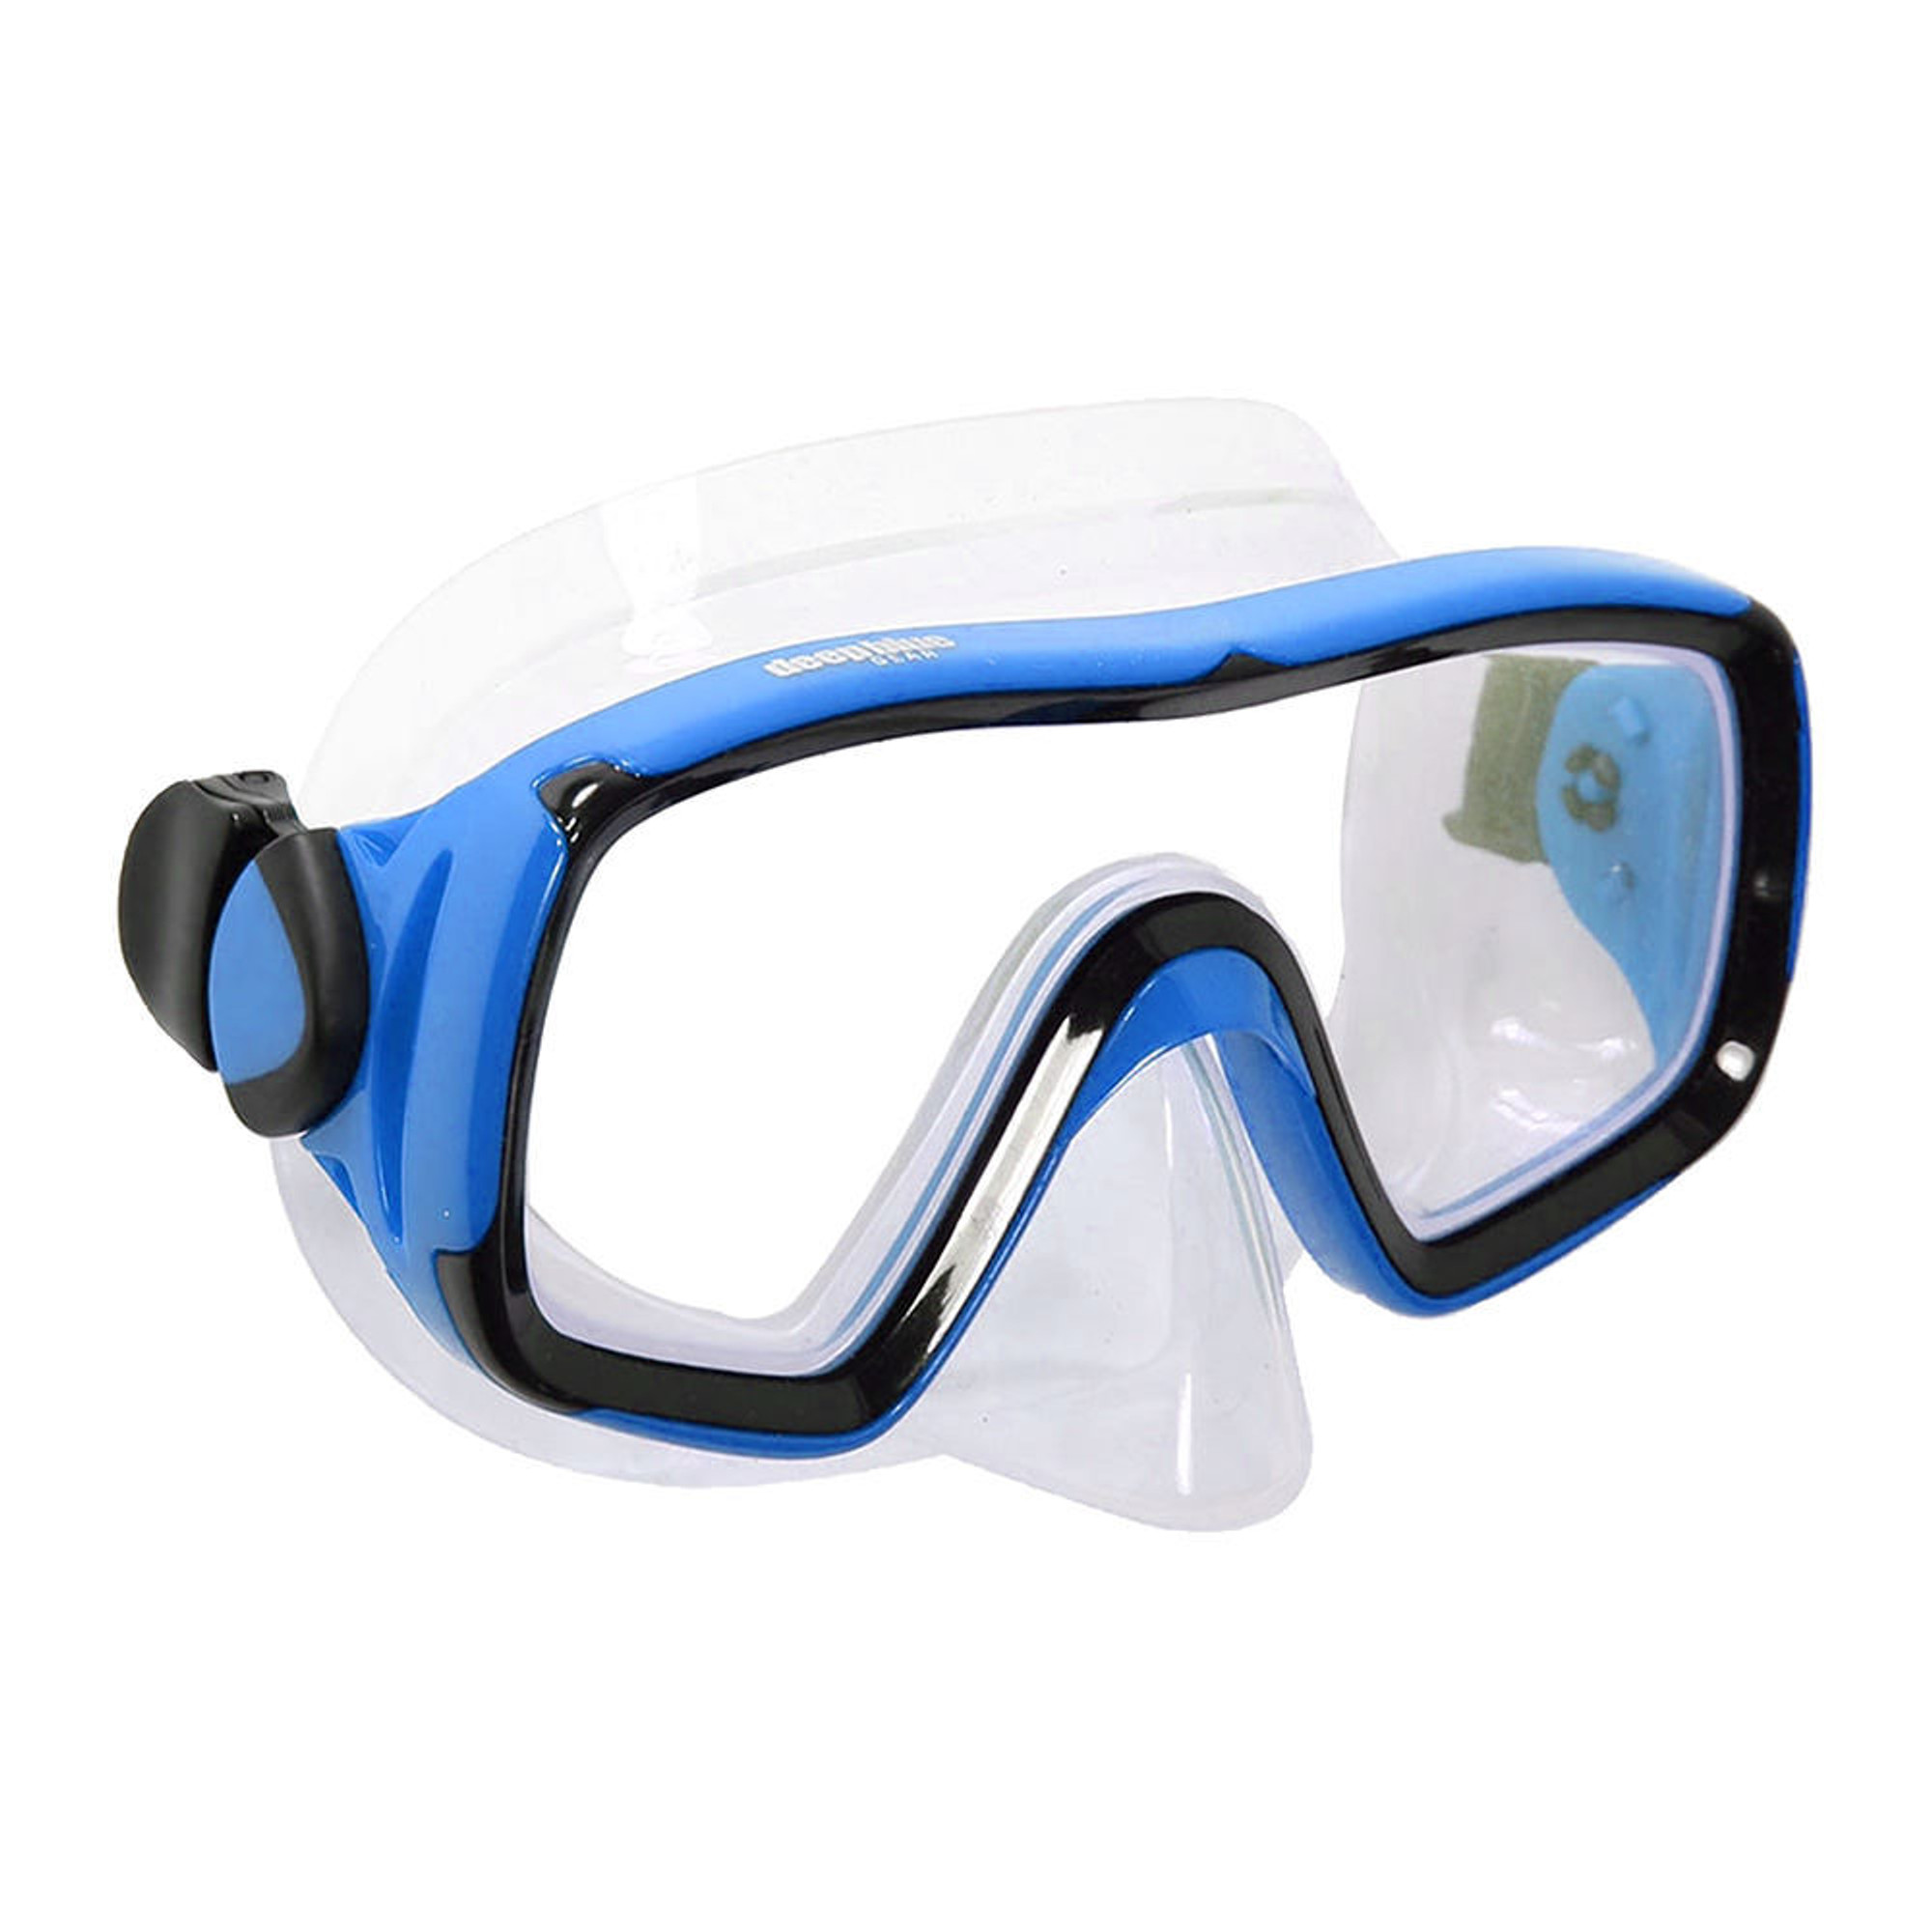 Montego - Adult Mask and Snorkel Set